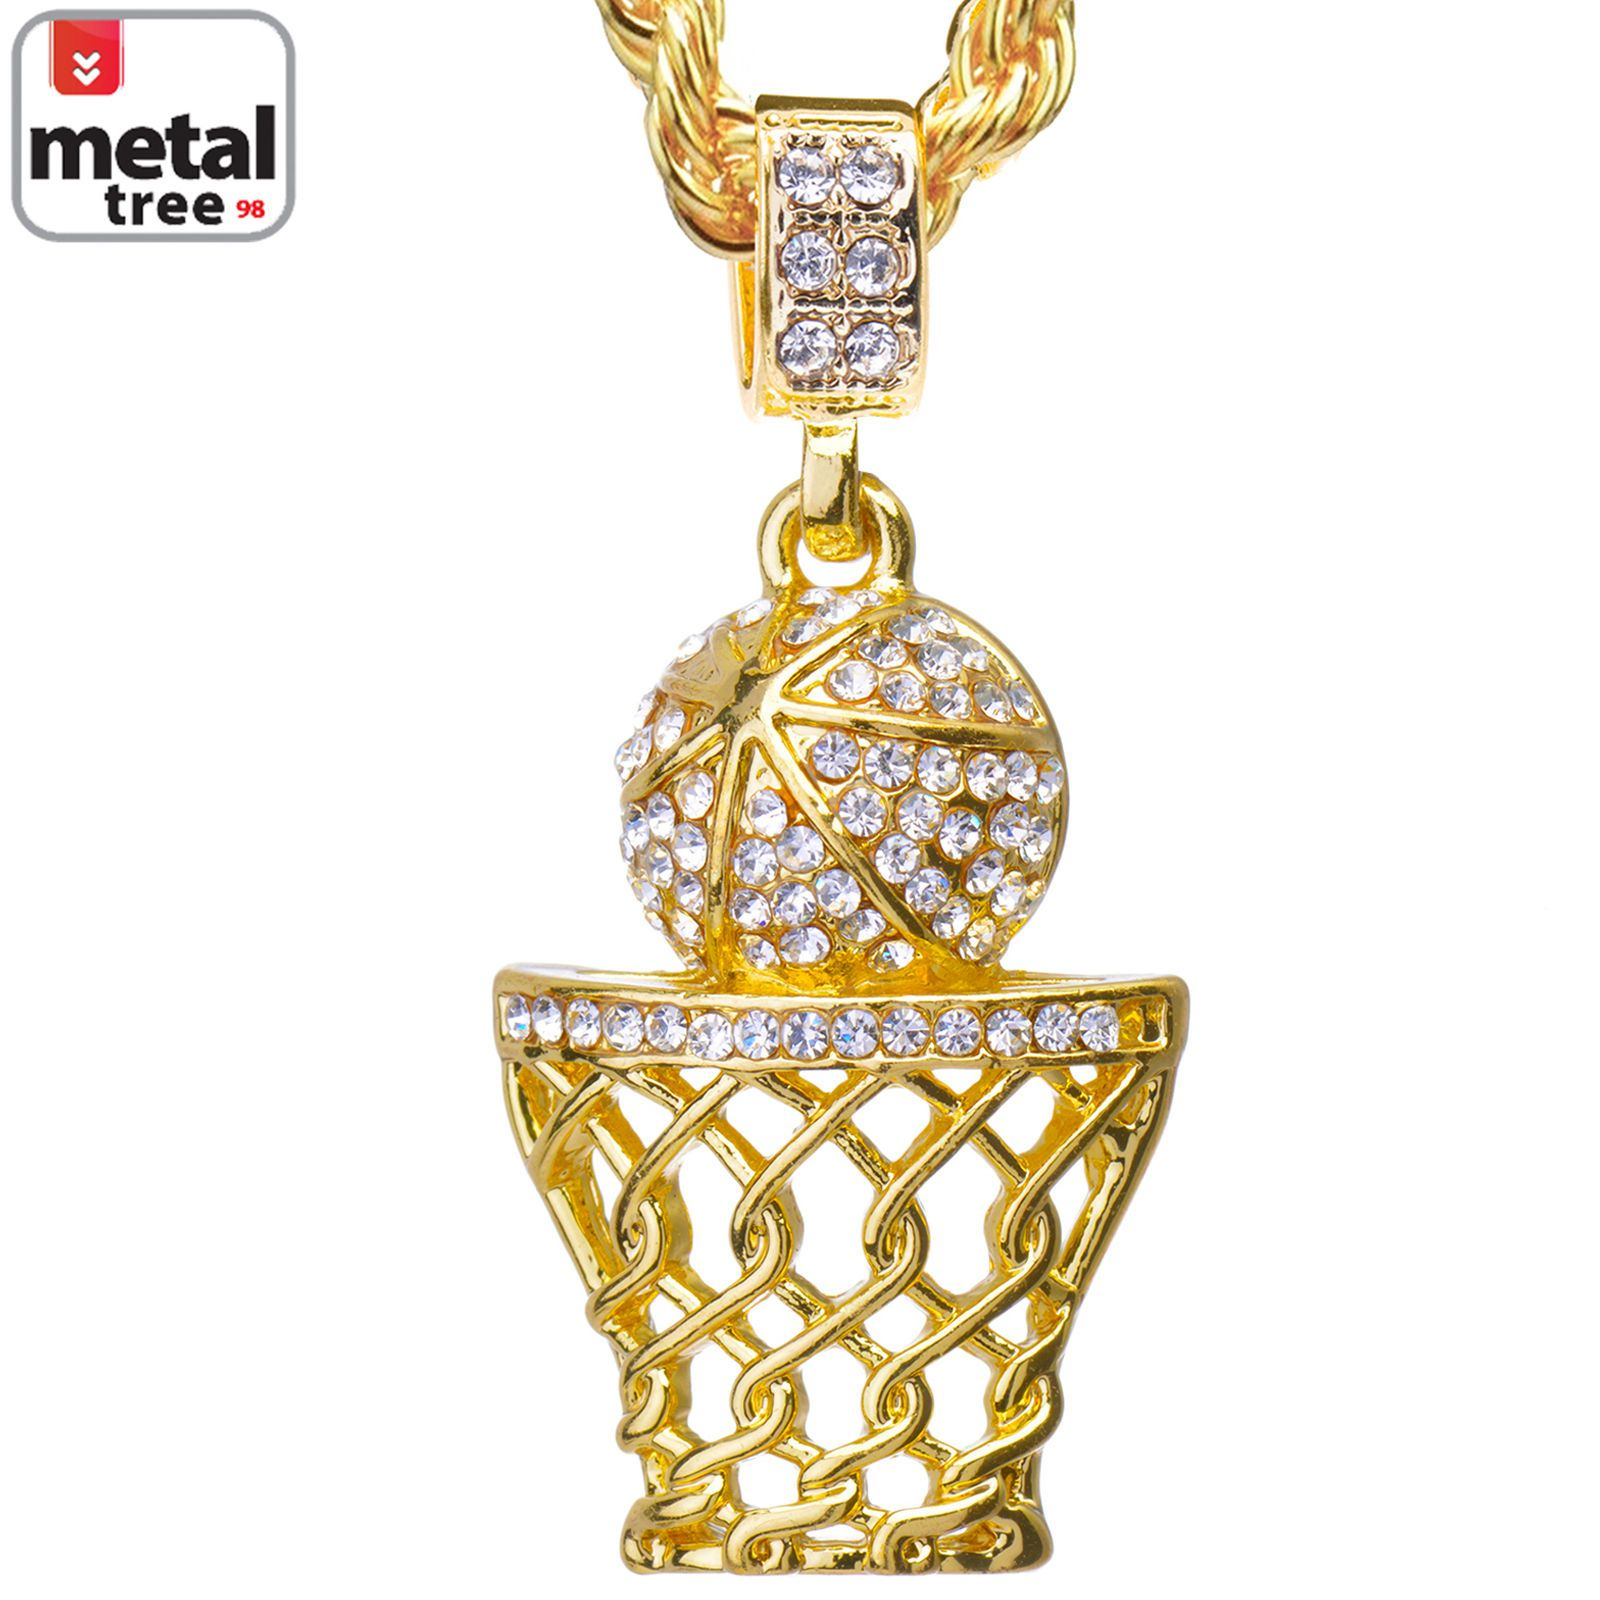 Men/'s 14K Gold Finish Iced Out 3D MONEY BAG WITH WINGS FLYING Pendant Charm Pc